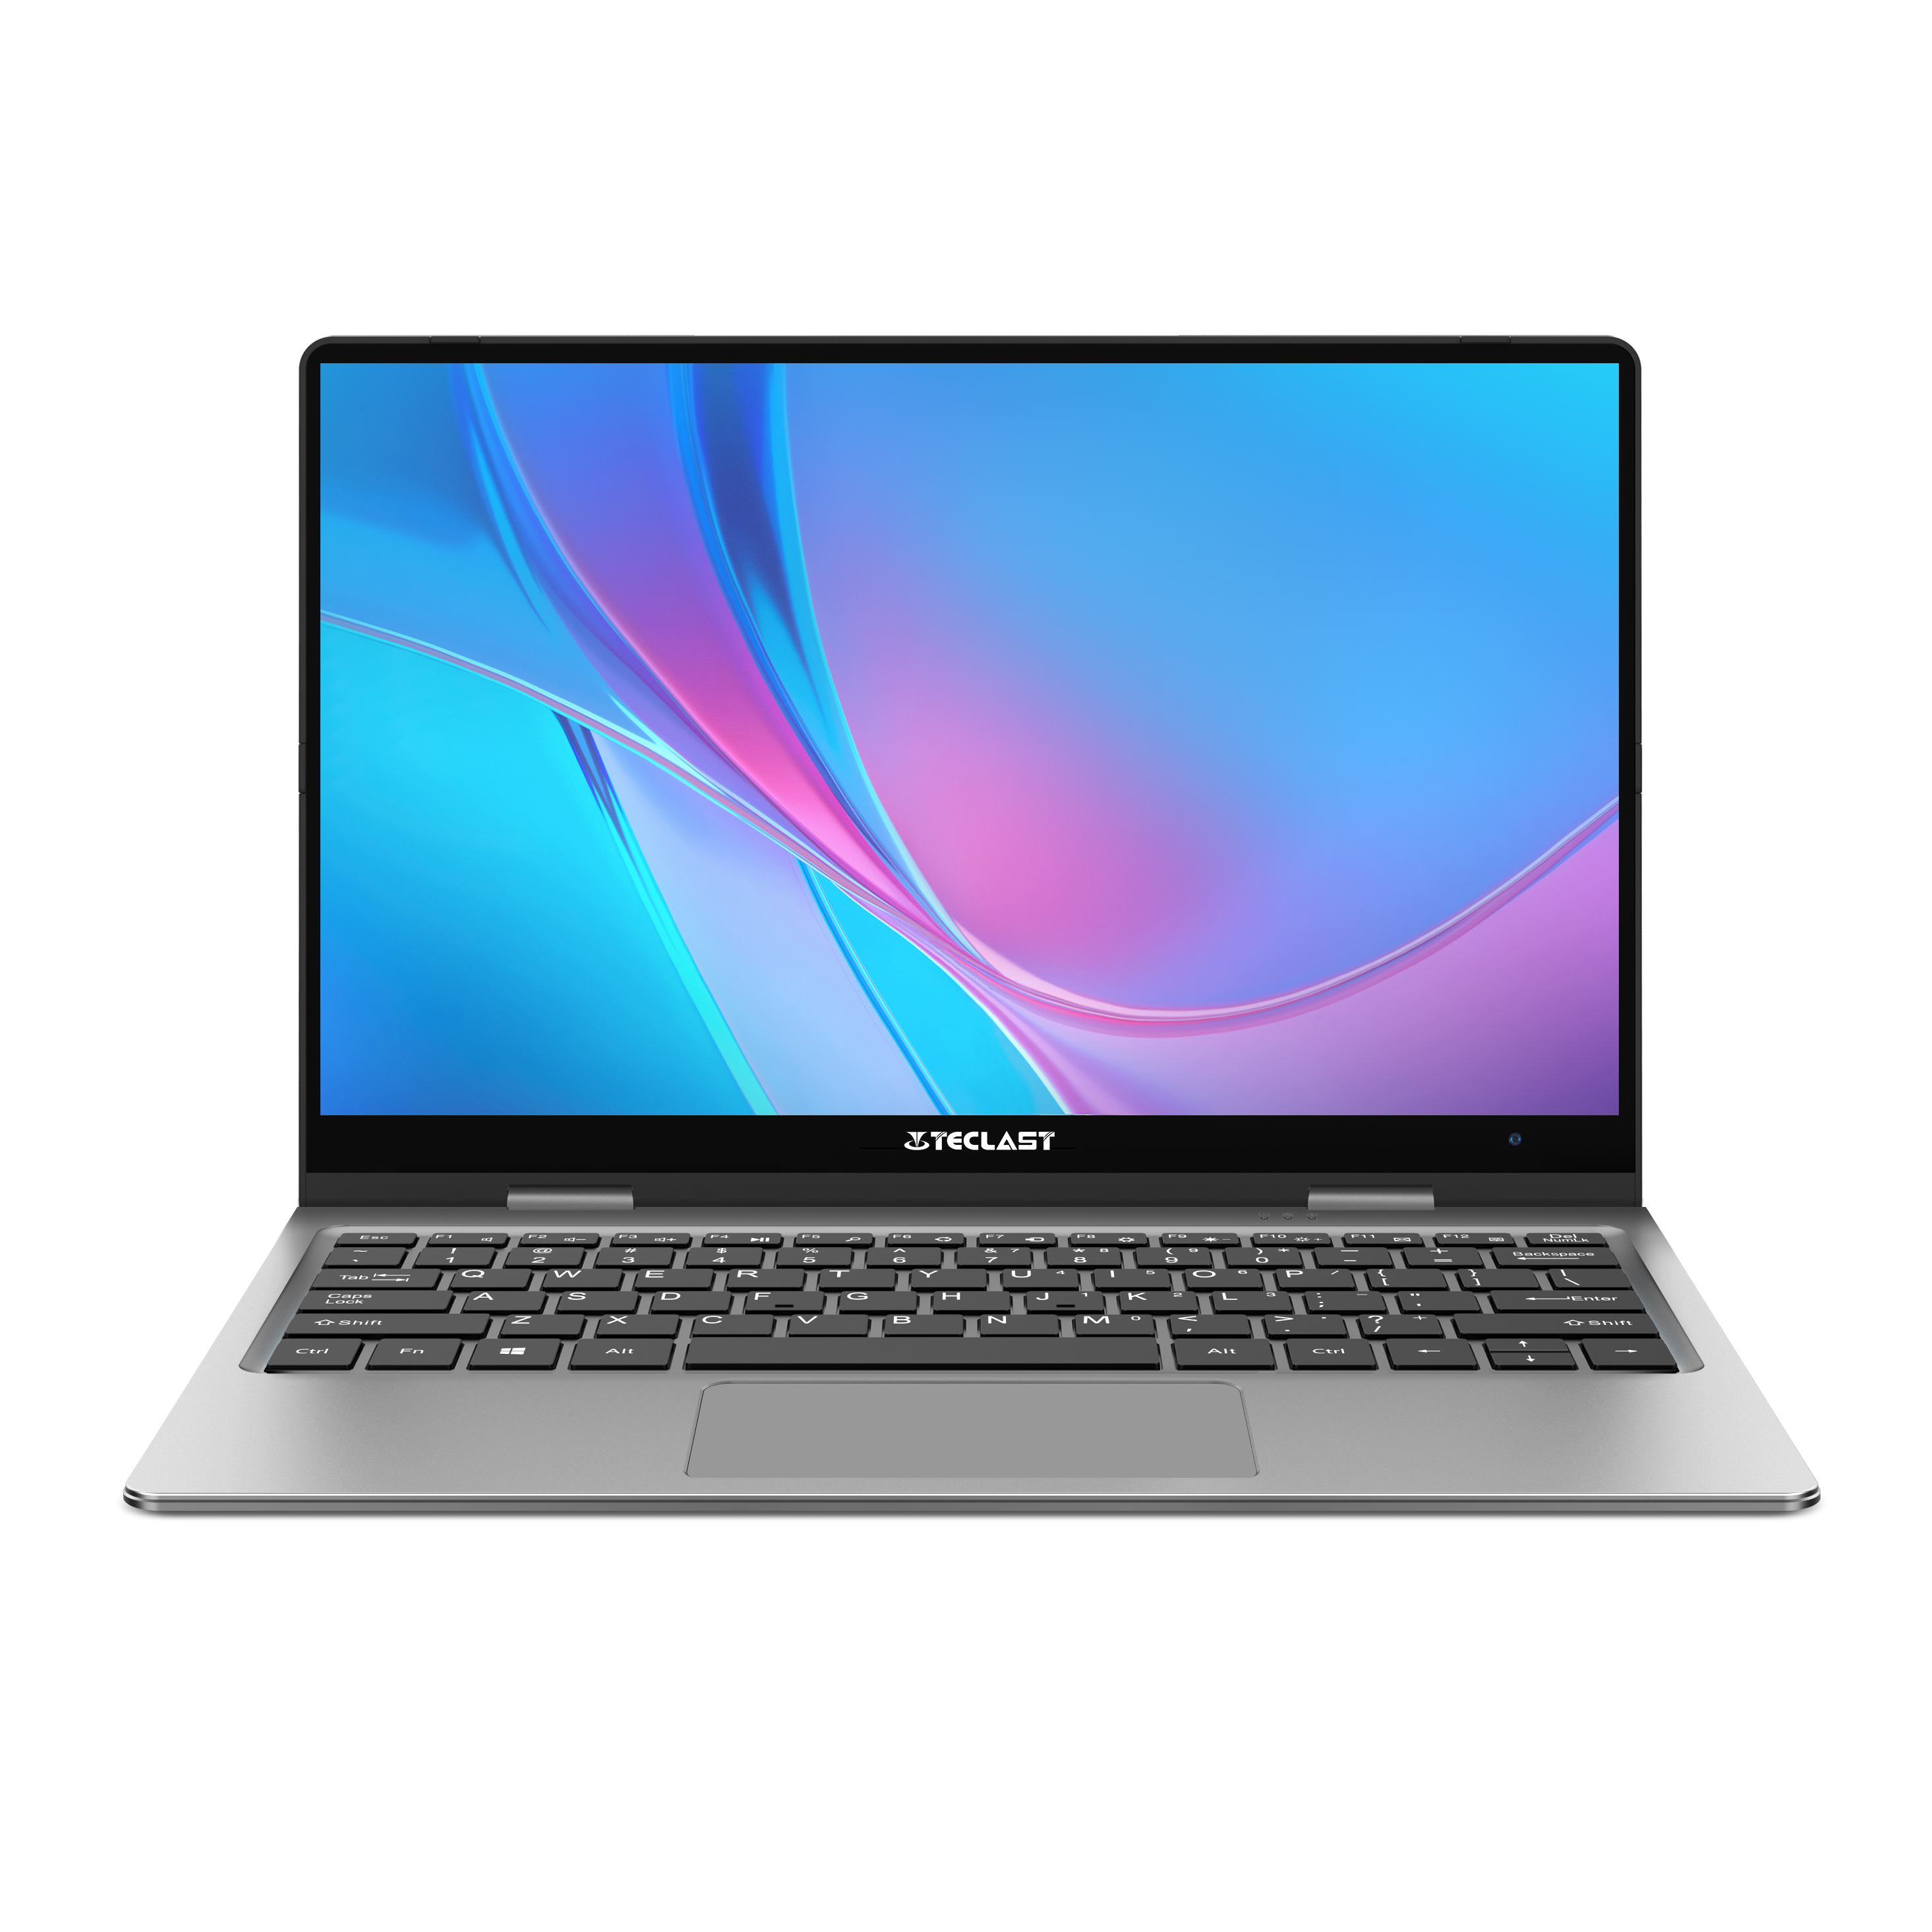 Teclast F5 Laptop 8GB RAM 256GB SSD Windows10 Intel Gemini Lake N4100 Quad Core 360 Rotating Touch Screen 11.6